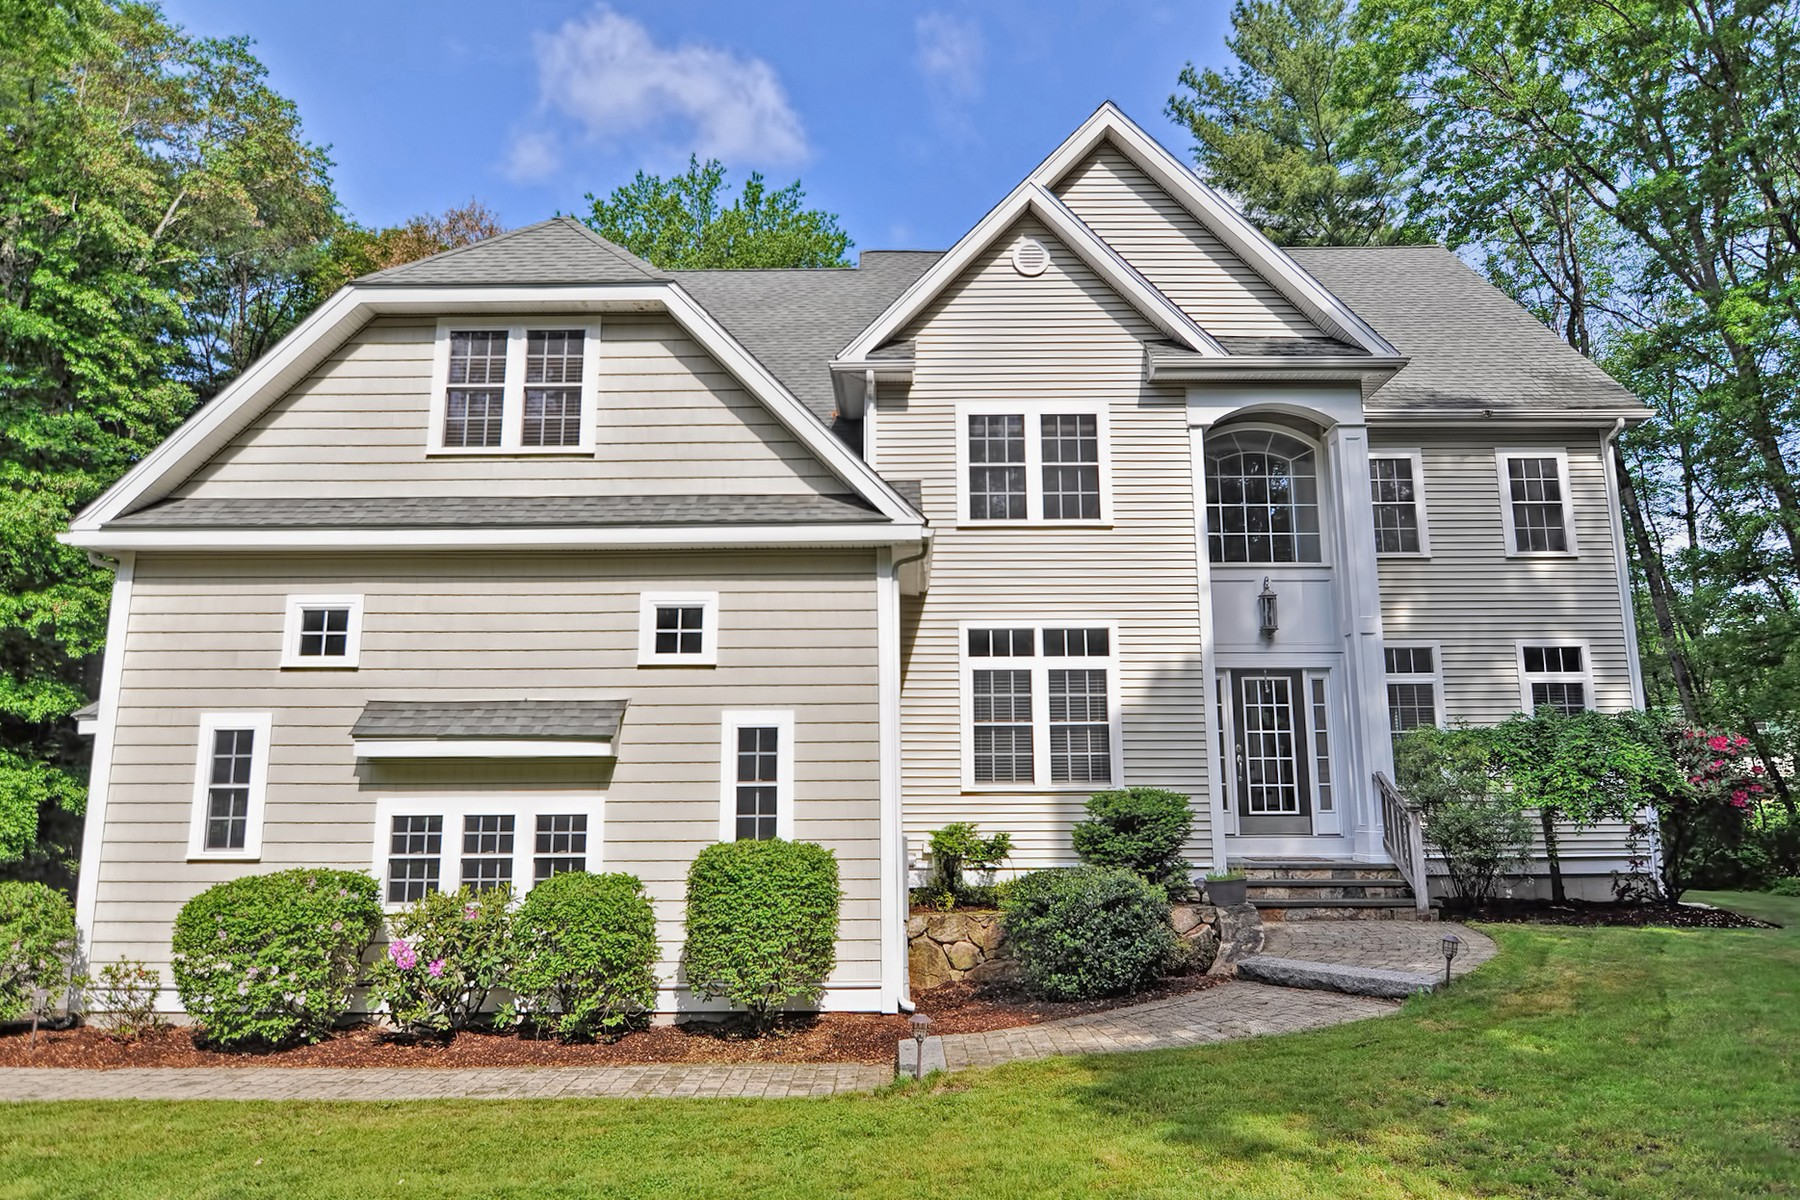 Single Family Homes for Active at Exceptional Young Colonial 35 Ted Lane Southborough, Massachusetts 01772 United States